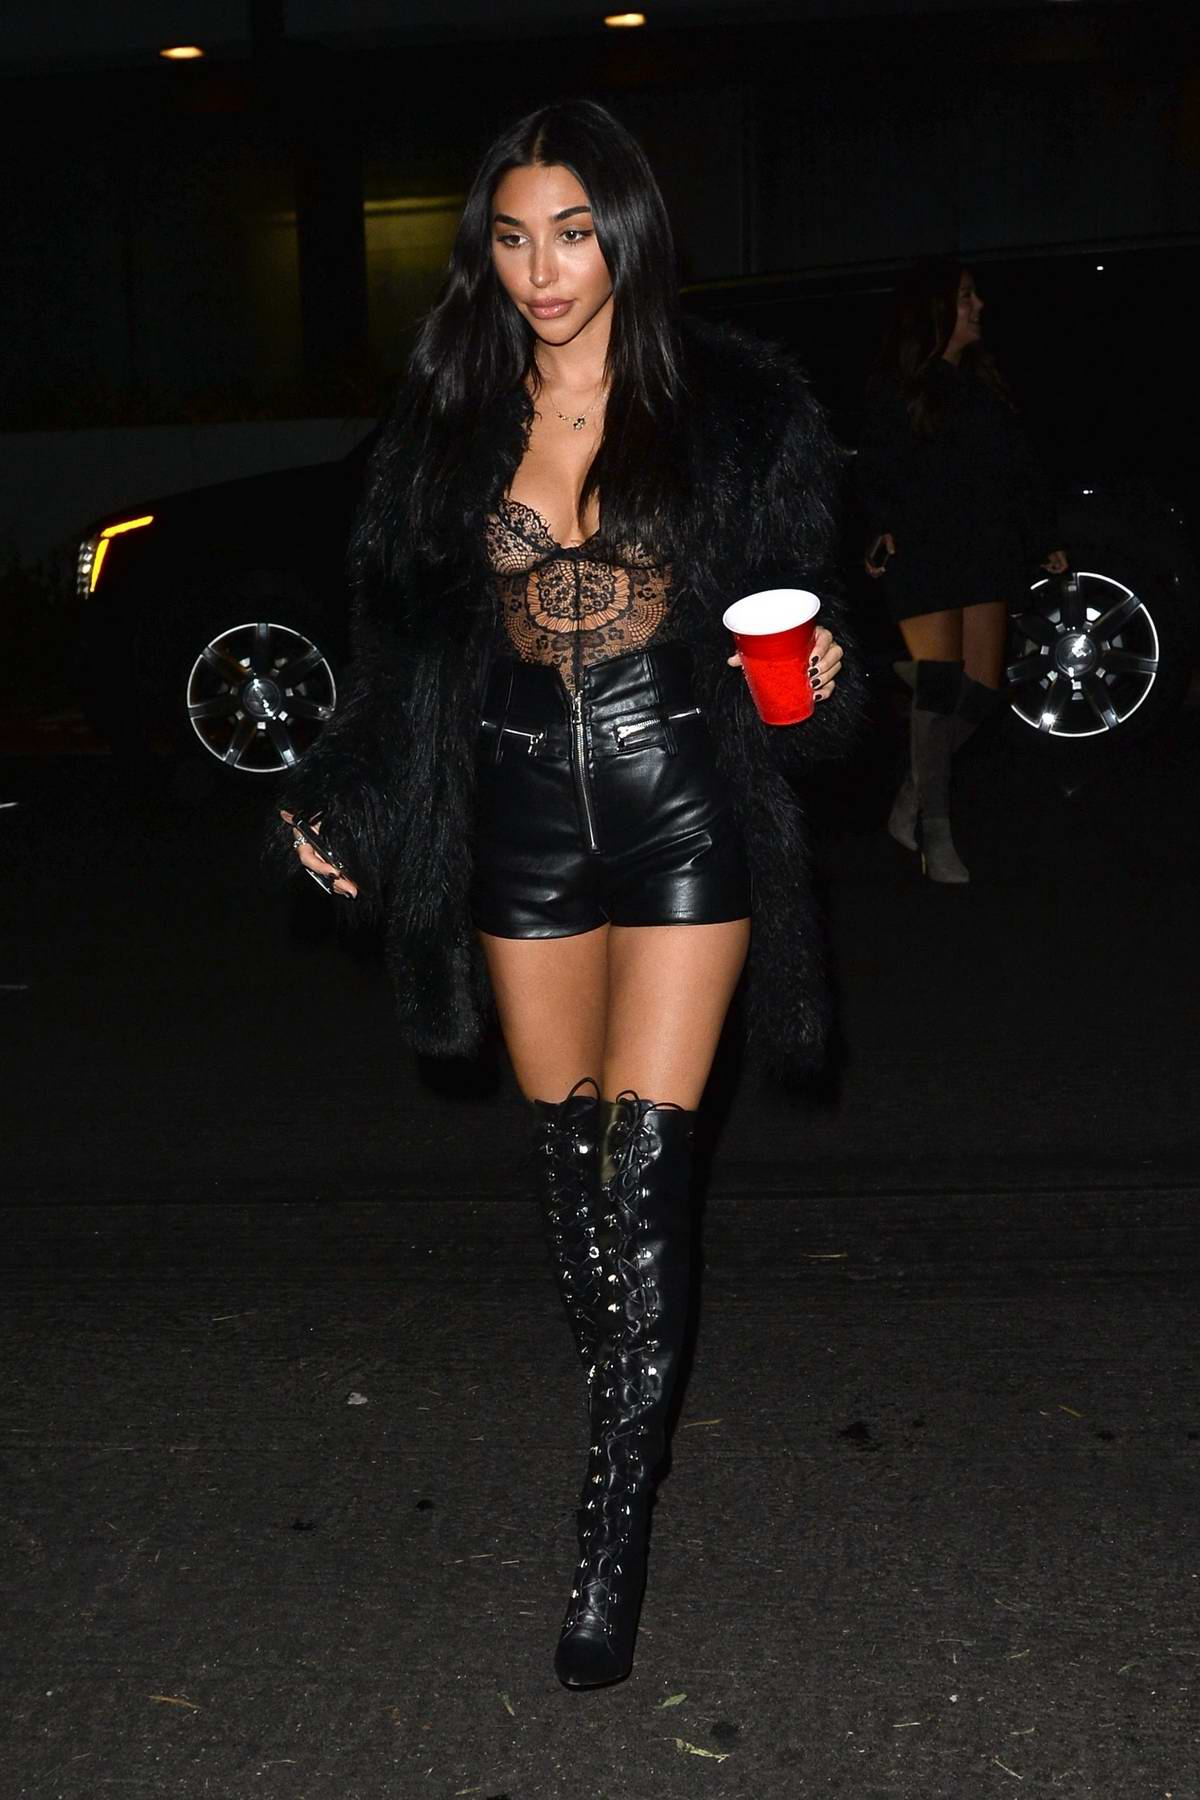 Chantel Jeffries sizzles in a black corset and leather shorts at Nikita Dragun's birthday bash in West Hollywood, Los Angeles